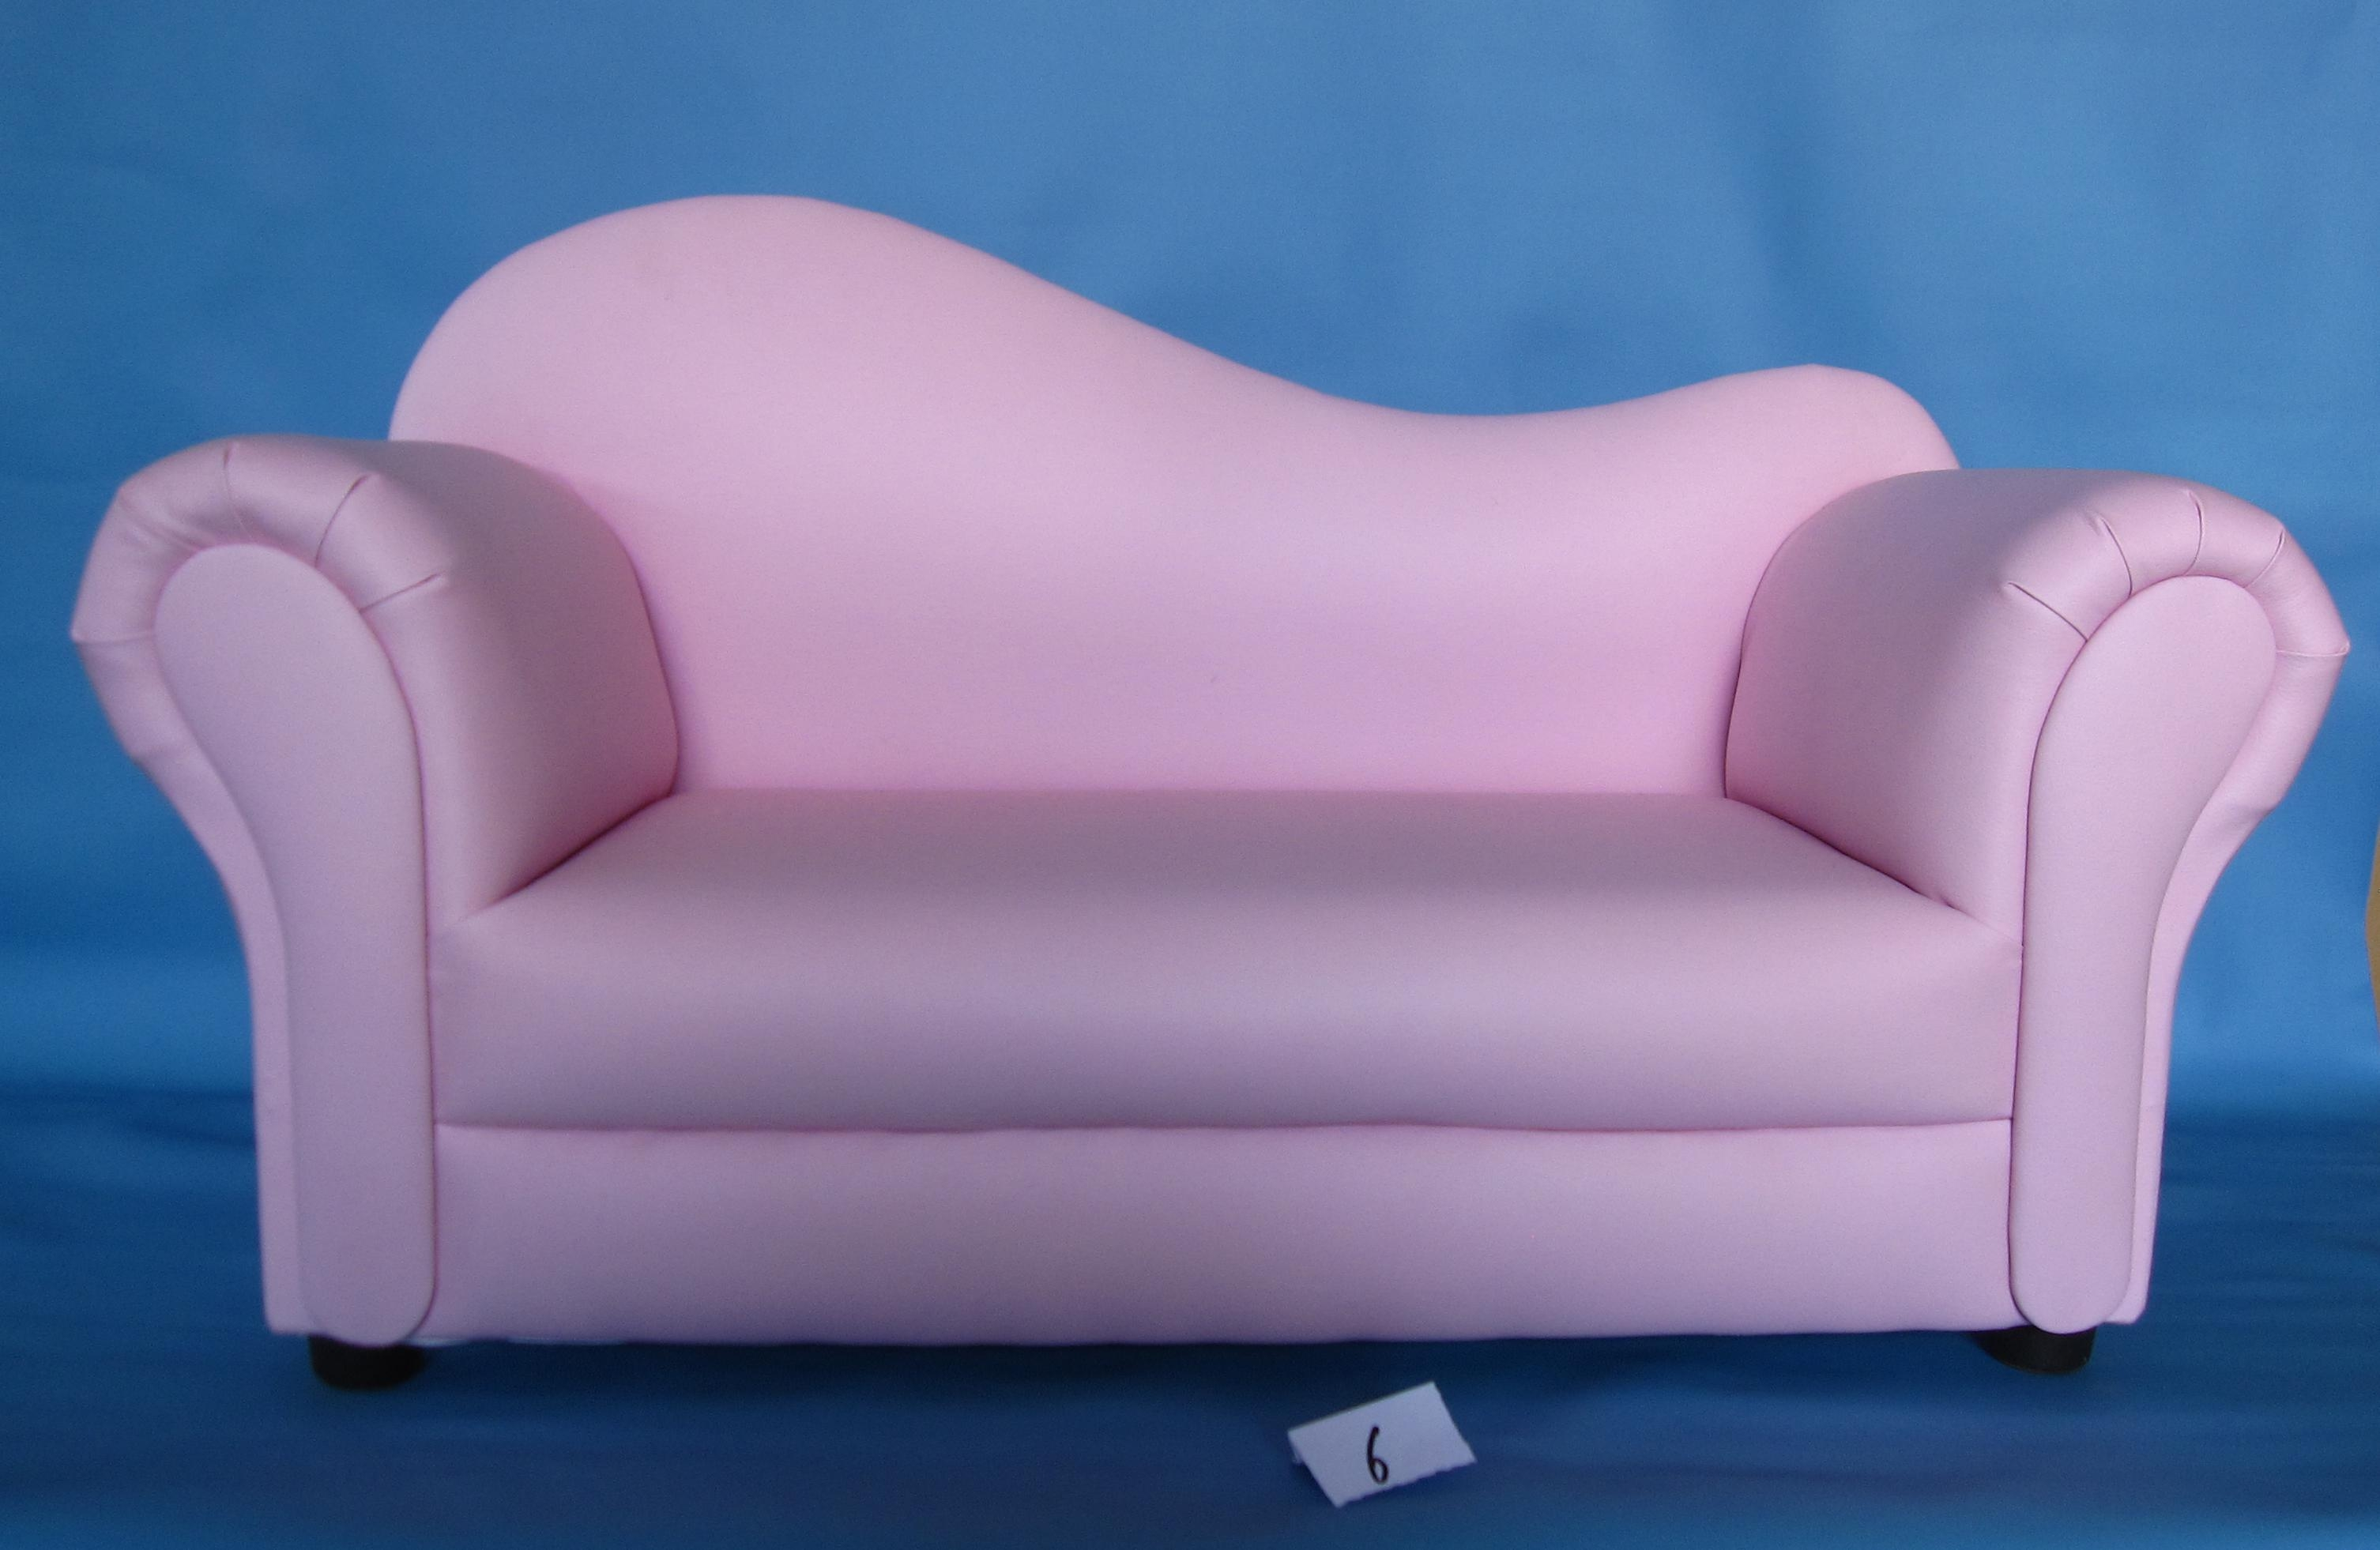 Wonderful Inflatable Furniture Chairs And Sofas Surripui Within Inflatable Sofas And Chairs (Image 15 of 15)